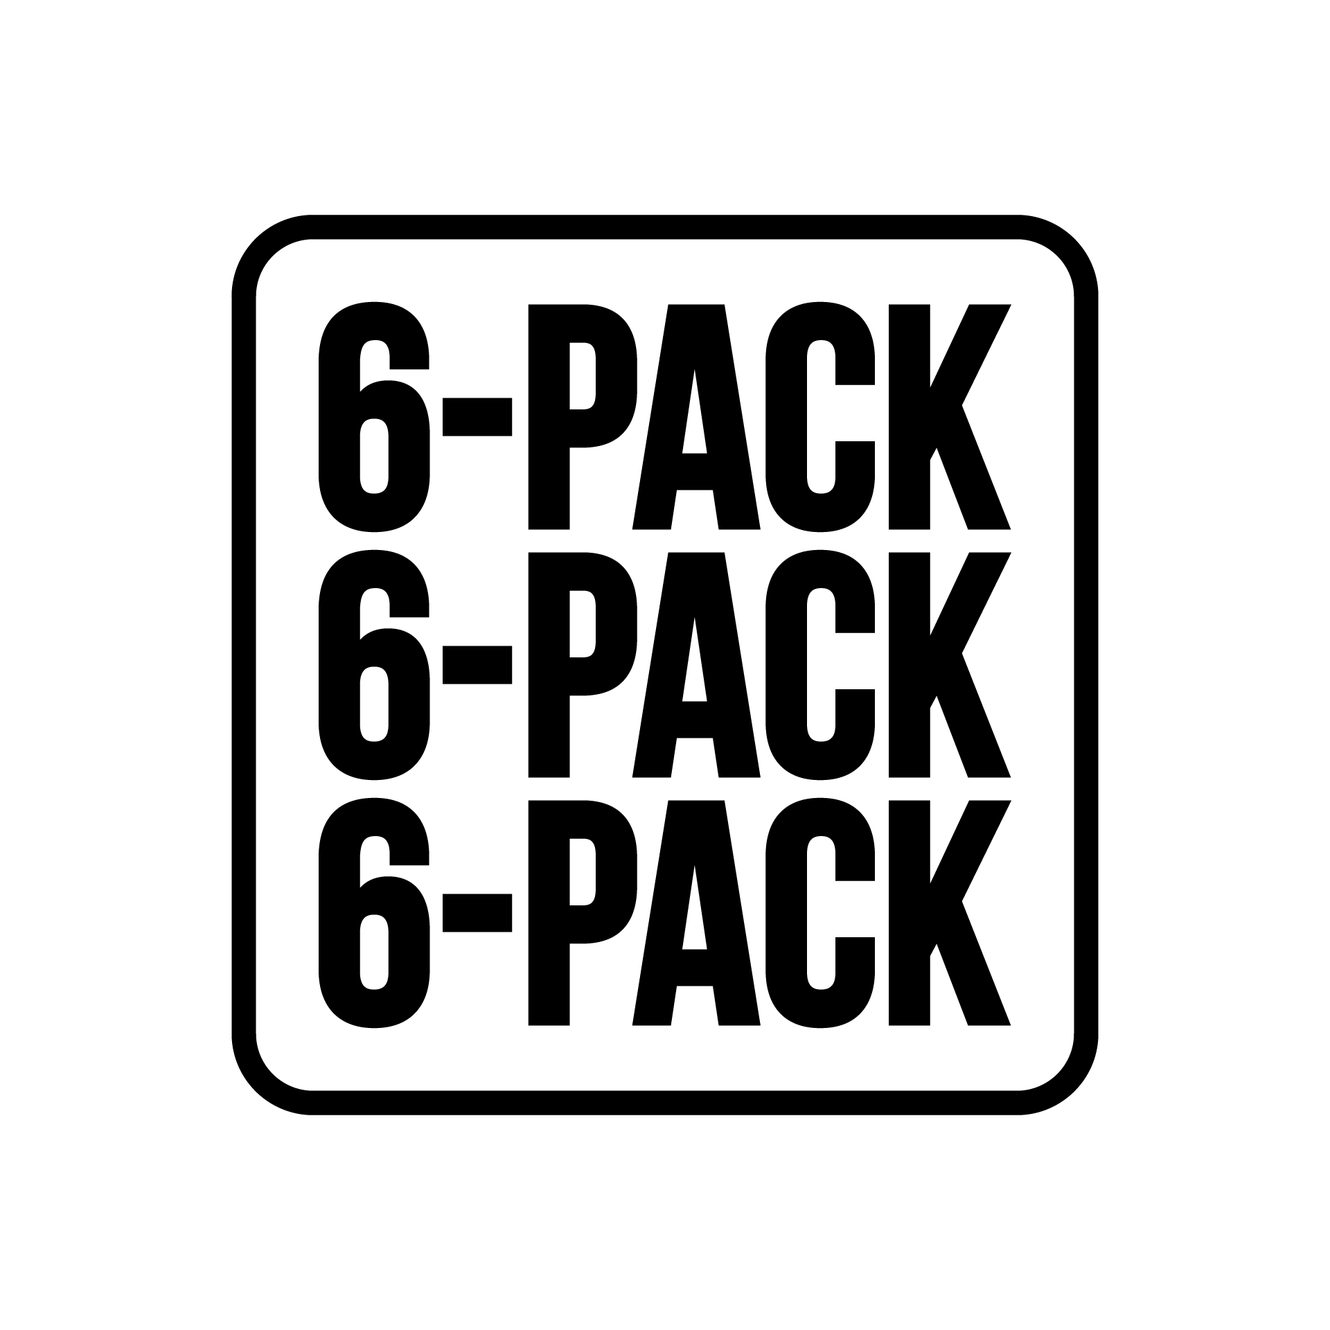 Image for Build your own 6 pack